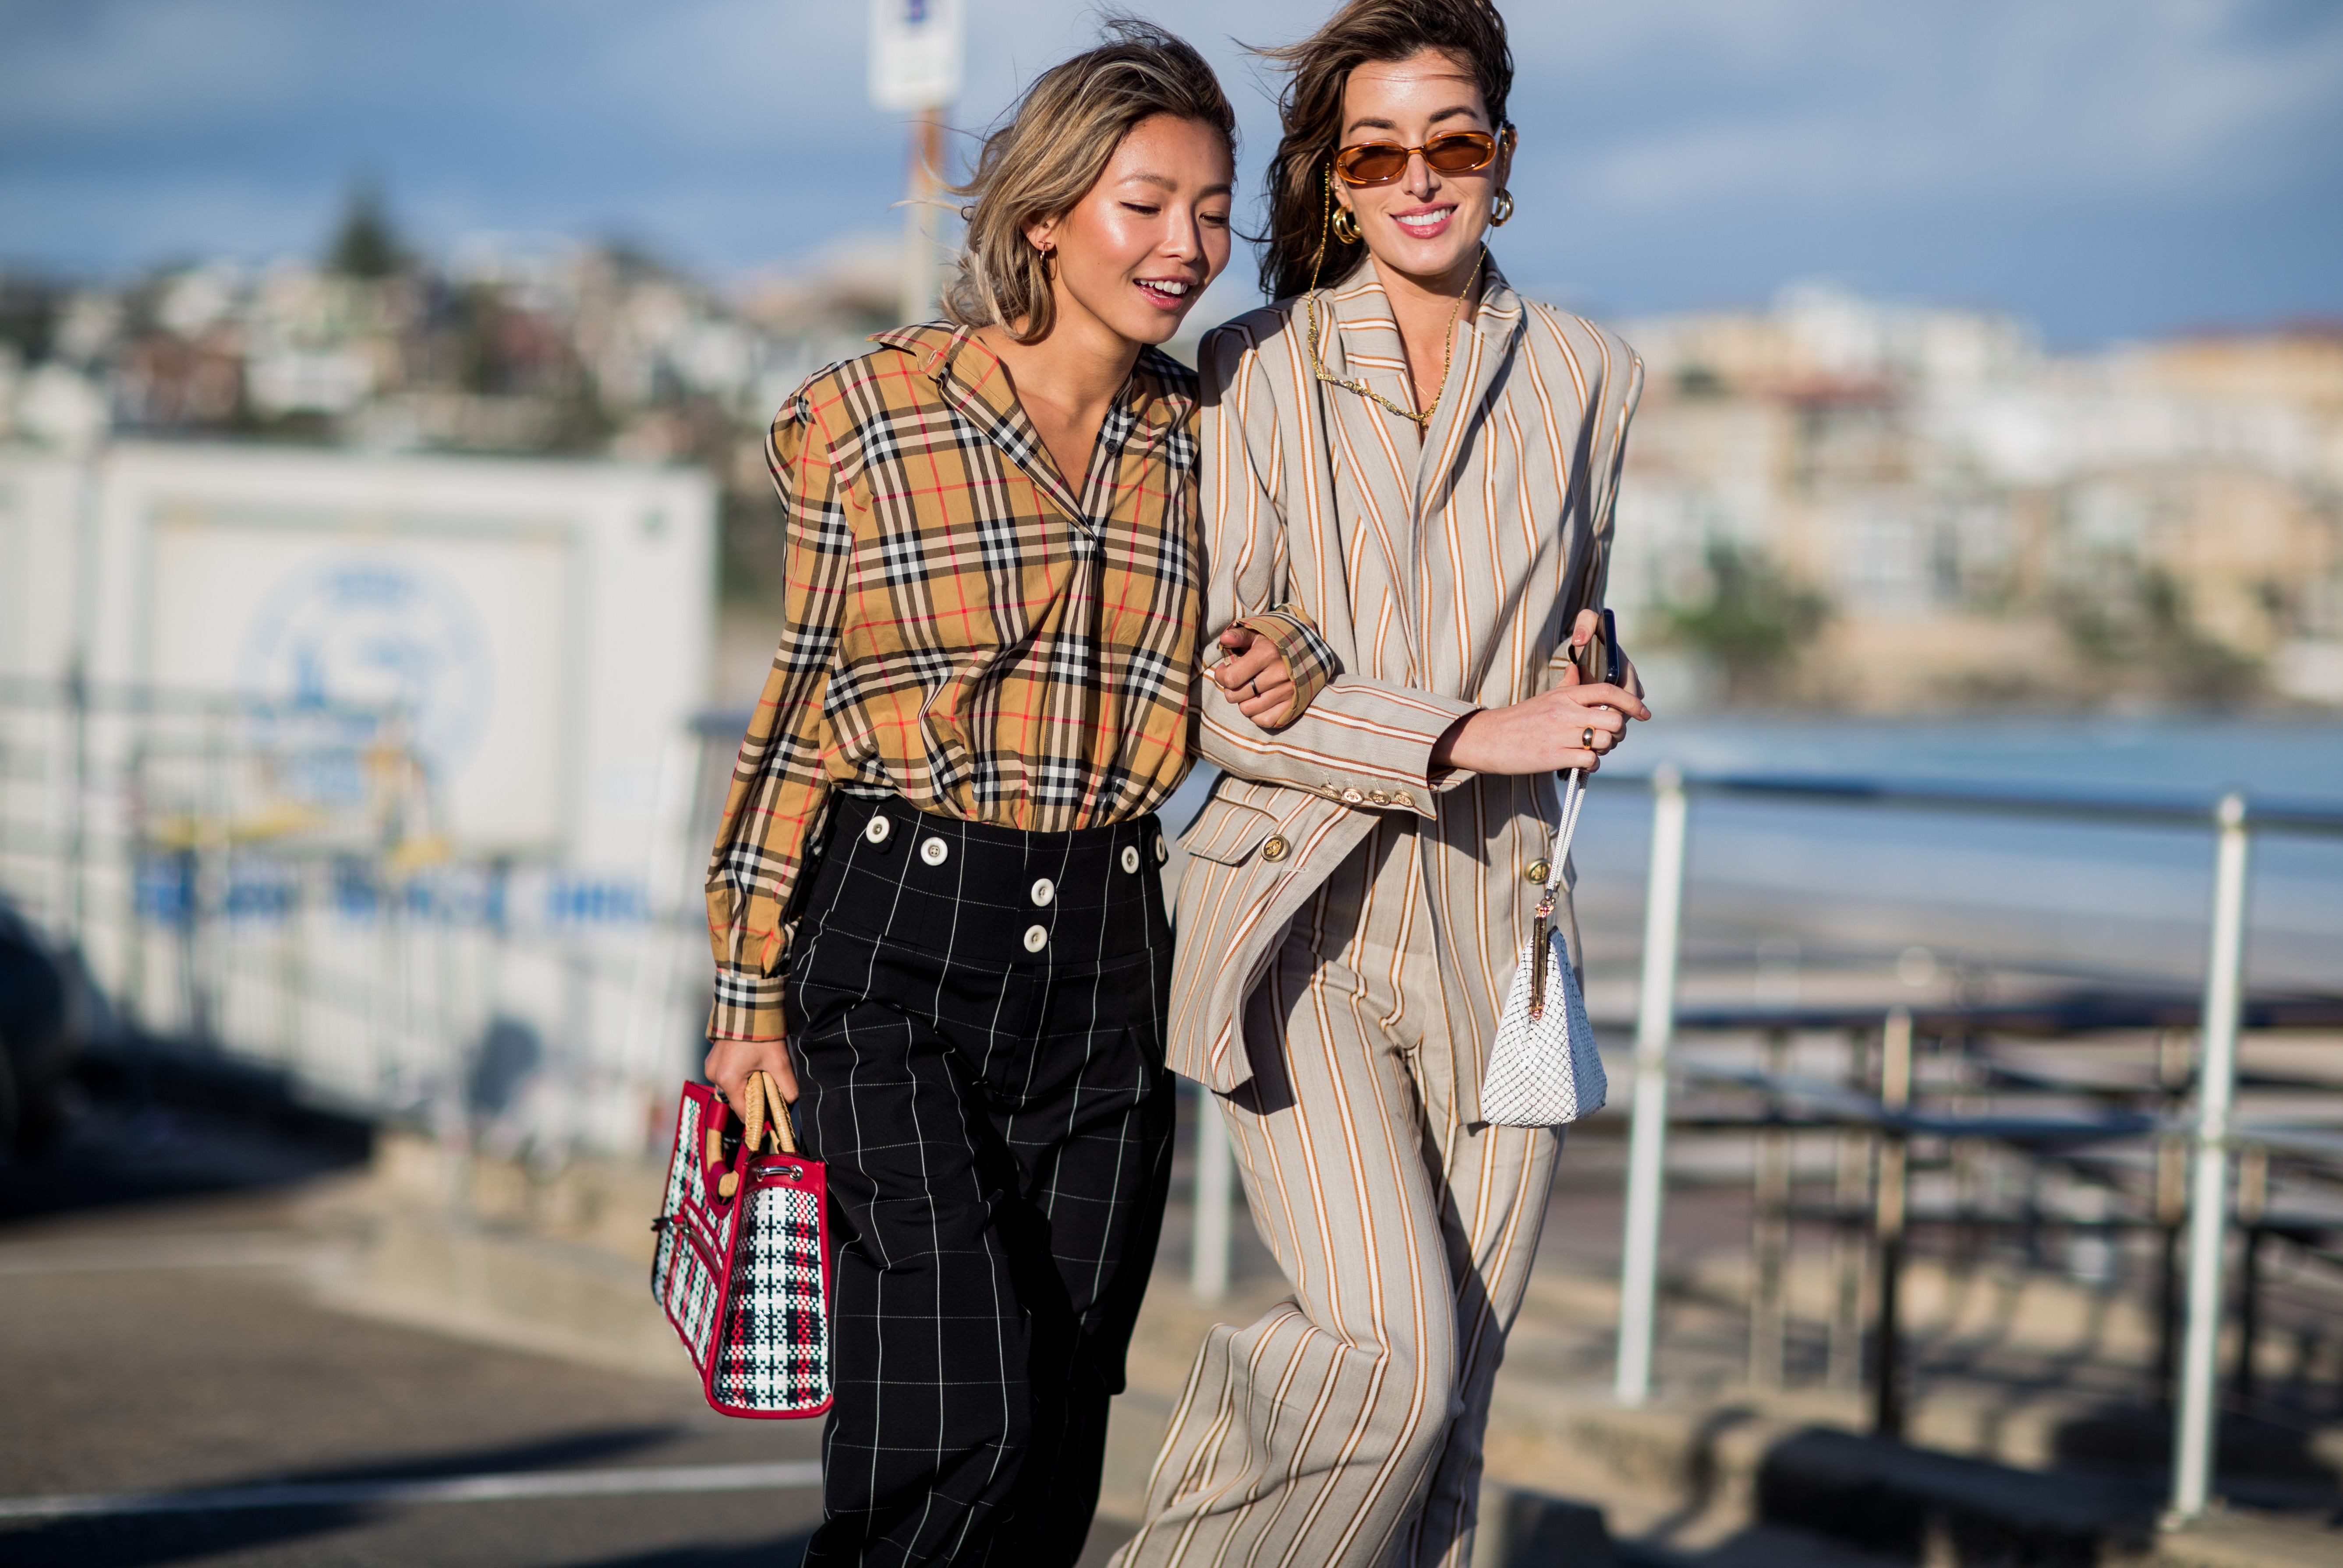 """This year's <a href=""""https://style.nine.com.au/2018/05/18/08/12/fashion-week-2018"""" target=""""_blank"""">Mercedes Benz Fashion Week Australia </a>has been in full force since Camilla & Marc kicked off on Sunday with an A-list crowd and out of this world (literally) Resort'19 collection.<br> <br> Bianca Spender, We are Kindred and Christopher Esber are just some of the other designers who have followed up with equally show-stopping collections over the past week.<br> <br> However, one of the highlights away from the runway is the display of unique and innovative outfits that make up fashion week's highly-coveted street style.<br> <br> And it's not just the catwalk stars and A-listers in the front row that are worthy of sartorial praise.<br> <br> We've sifted through the sidewalk circus performers to find you the key looks worth copying when winter arrives."""